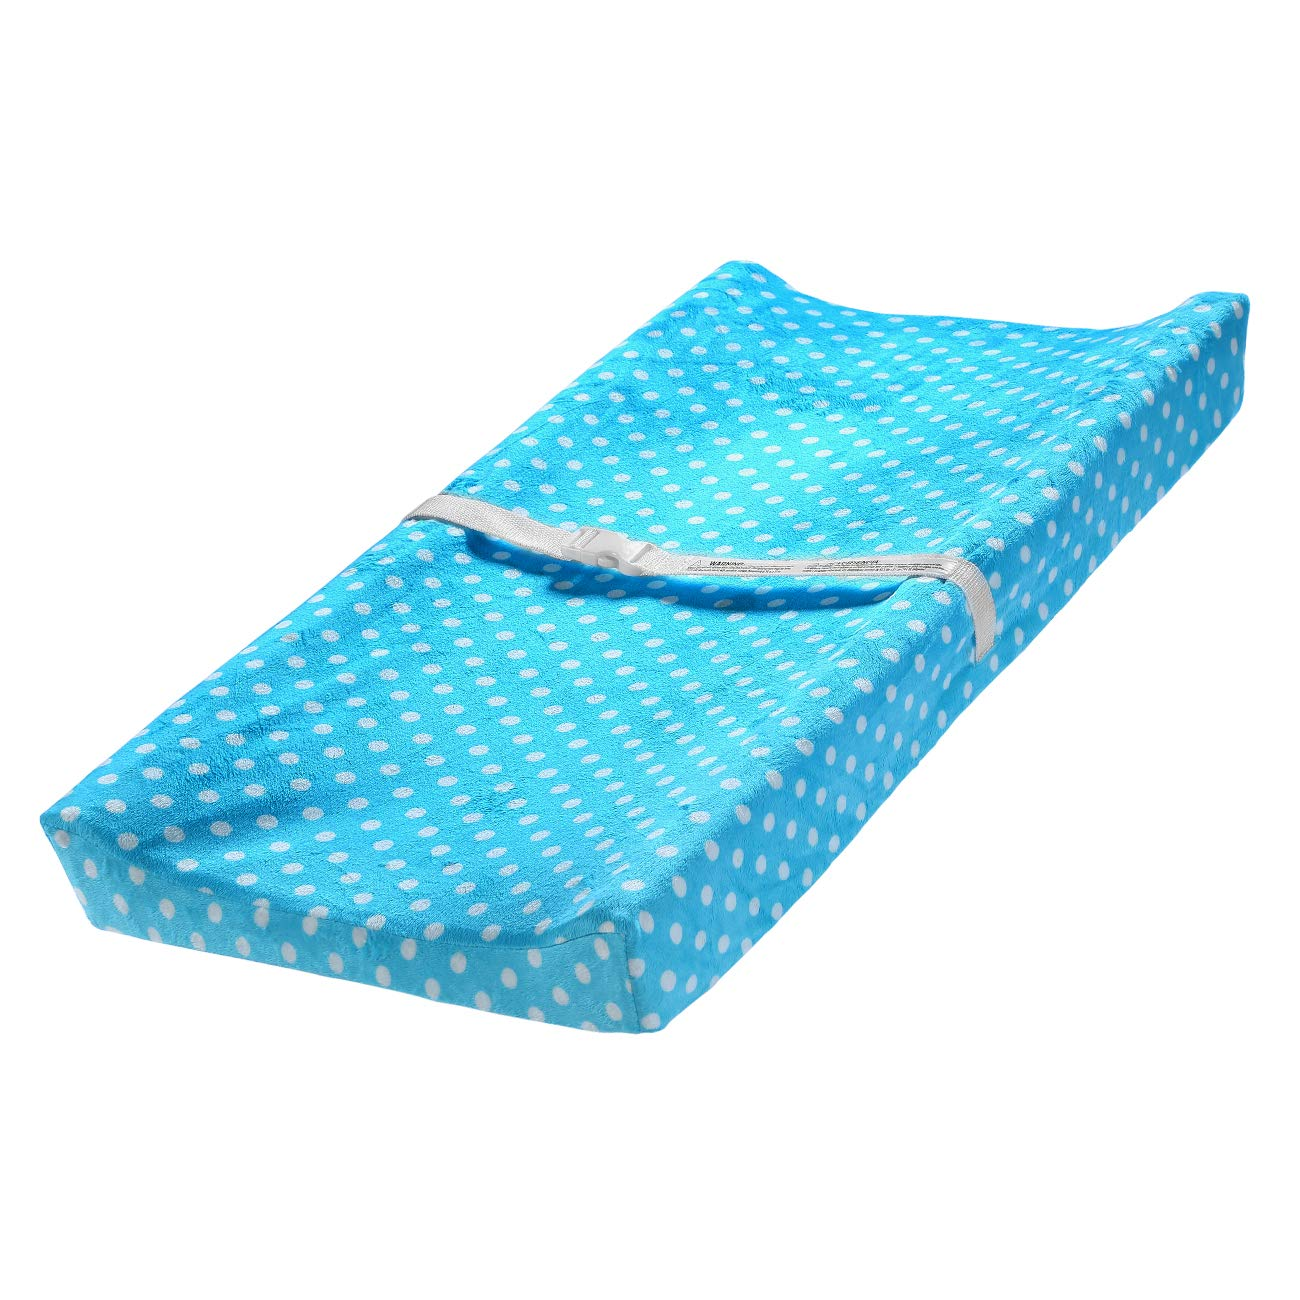 Entyle Changing Pad Covers - Ultra Soft Plush Baby Changing Table Cradle Sheets, 32